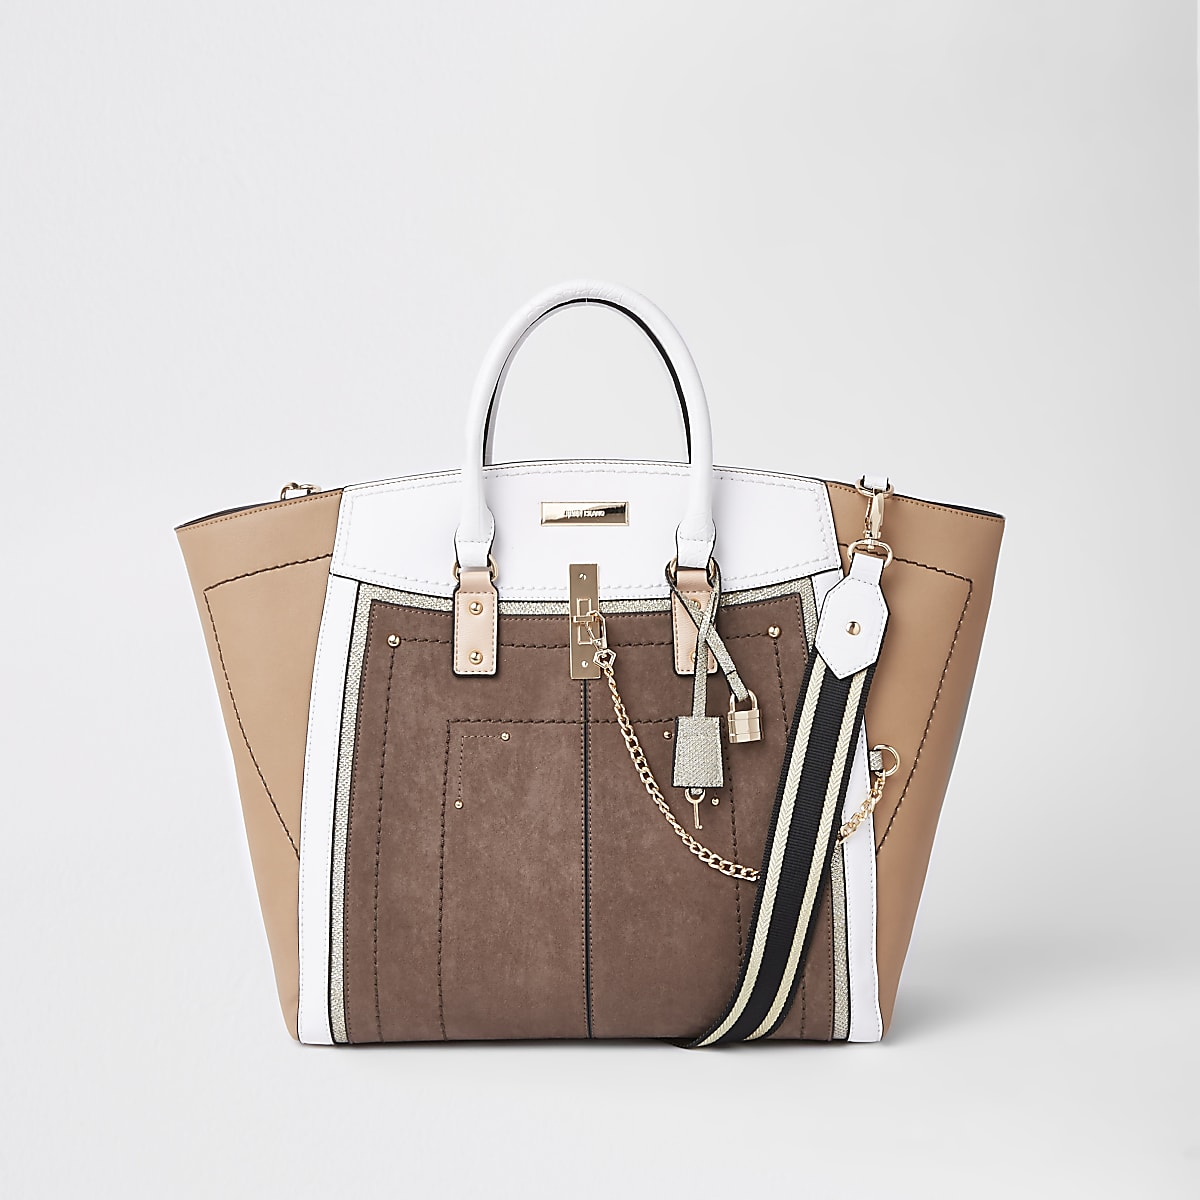 Tote Bag in Beige-Metallic